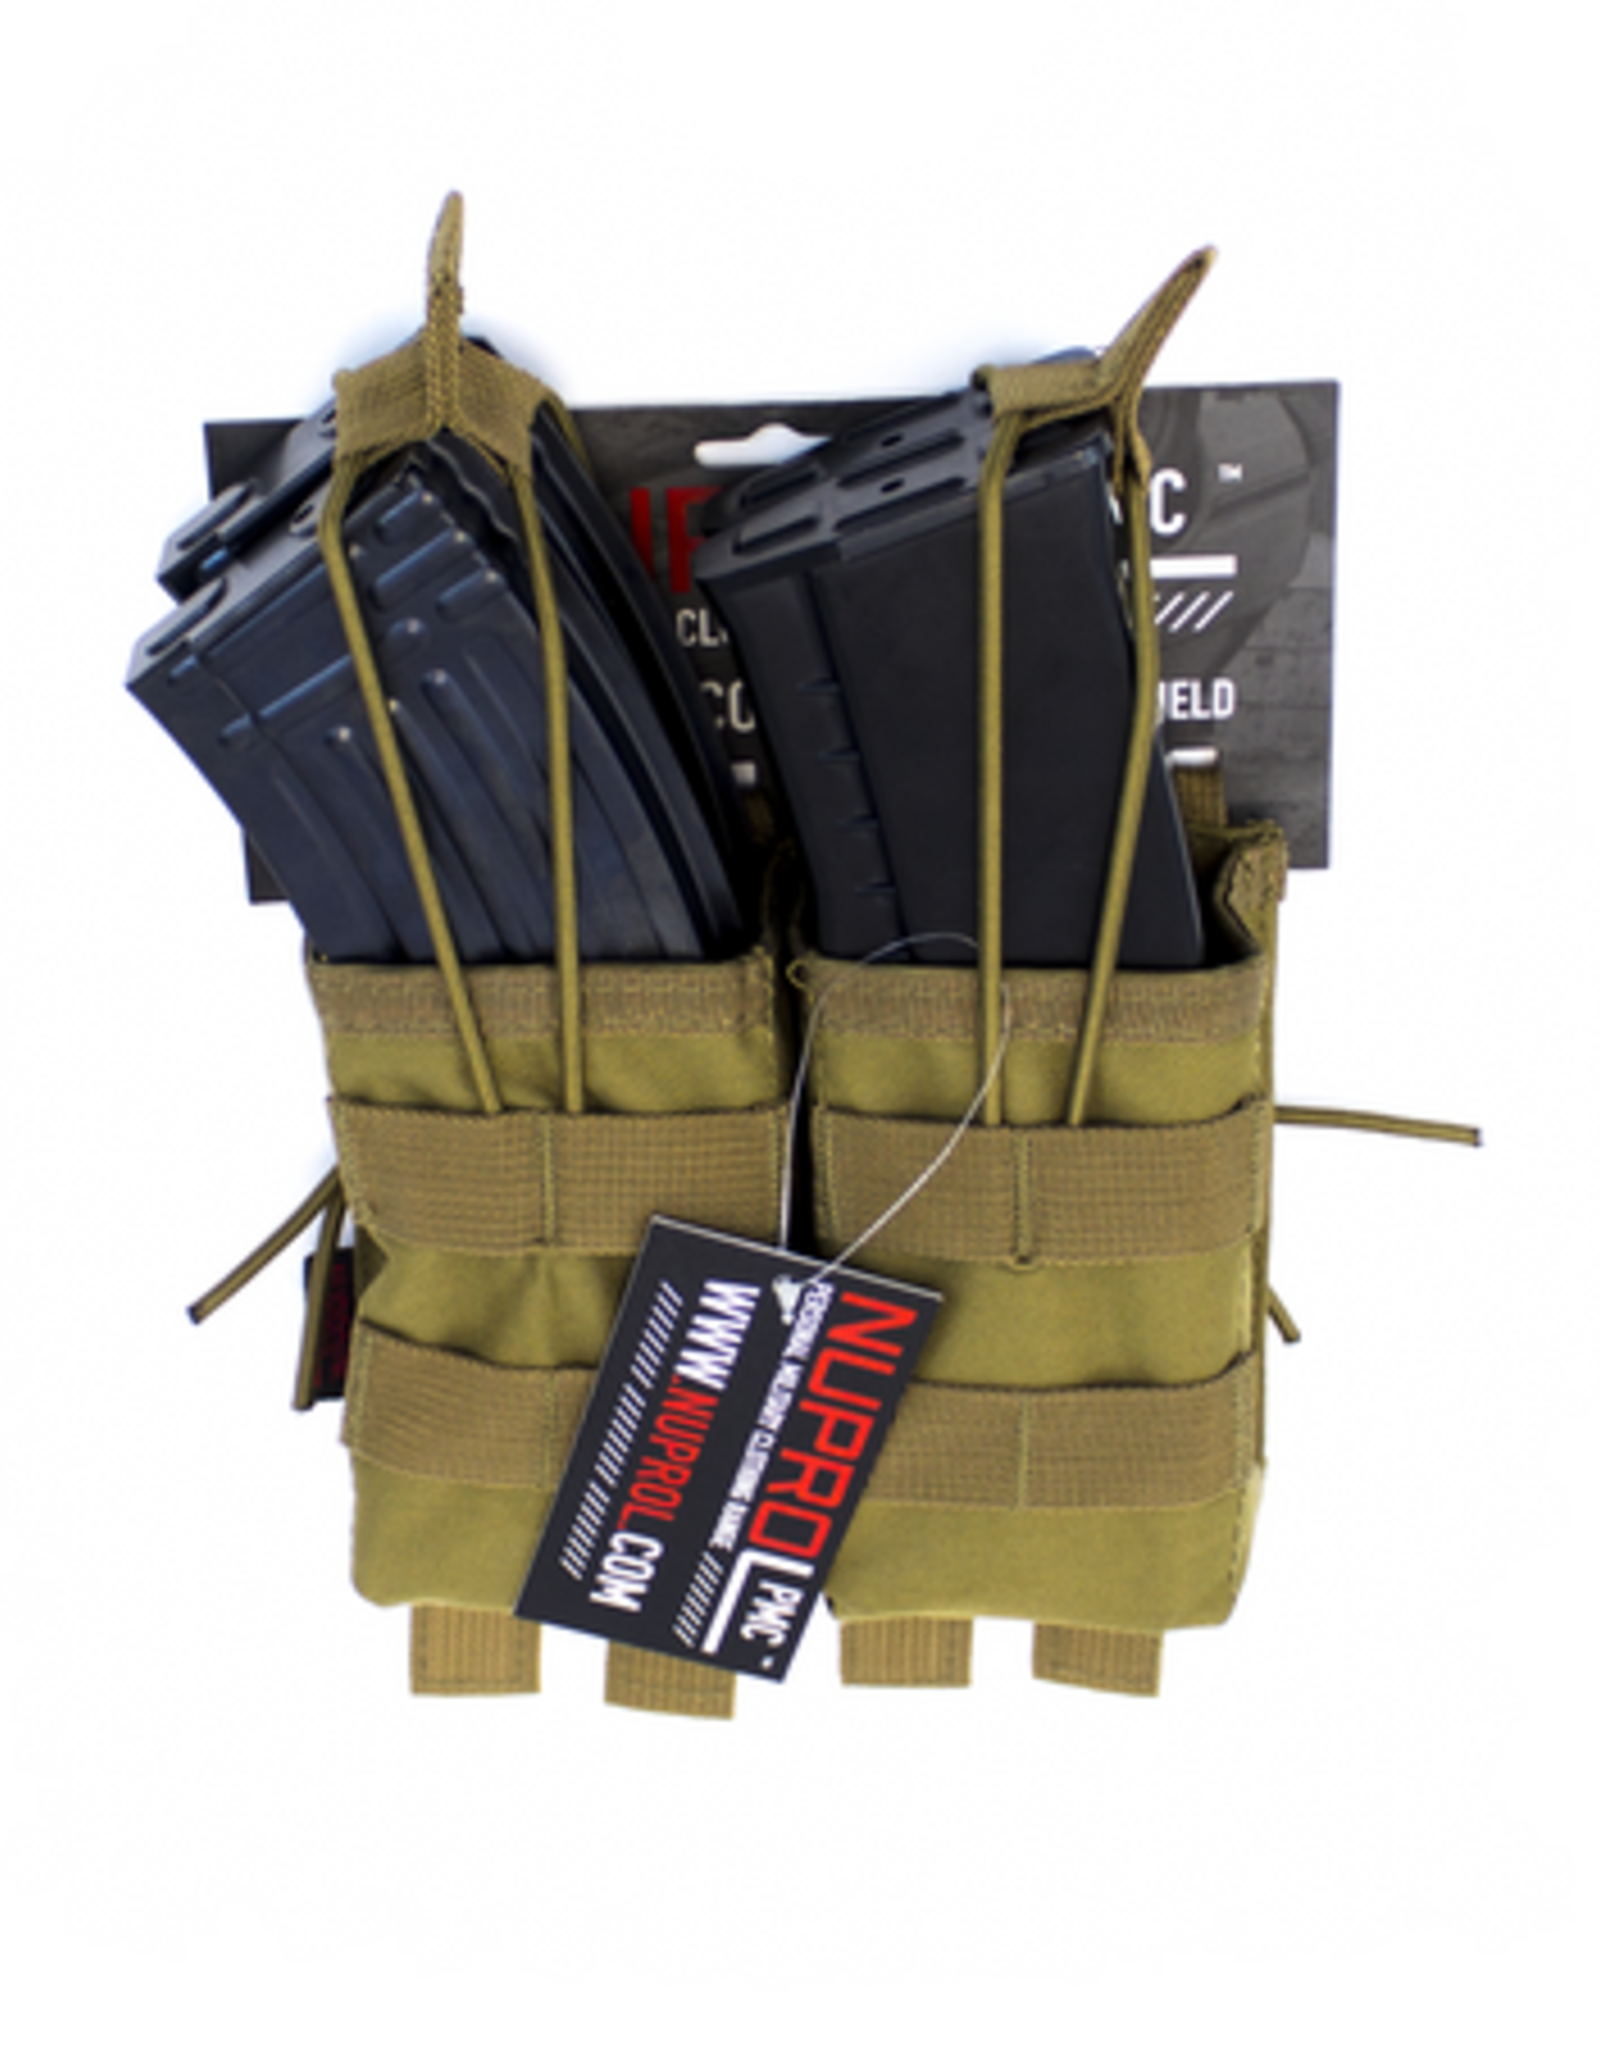 NUPROL NP PMC AK DOUBLE OPEN MAG POUCH - TAN